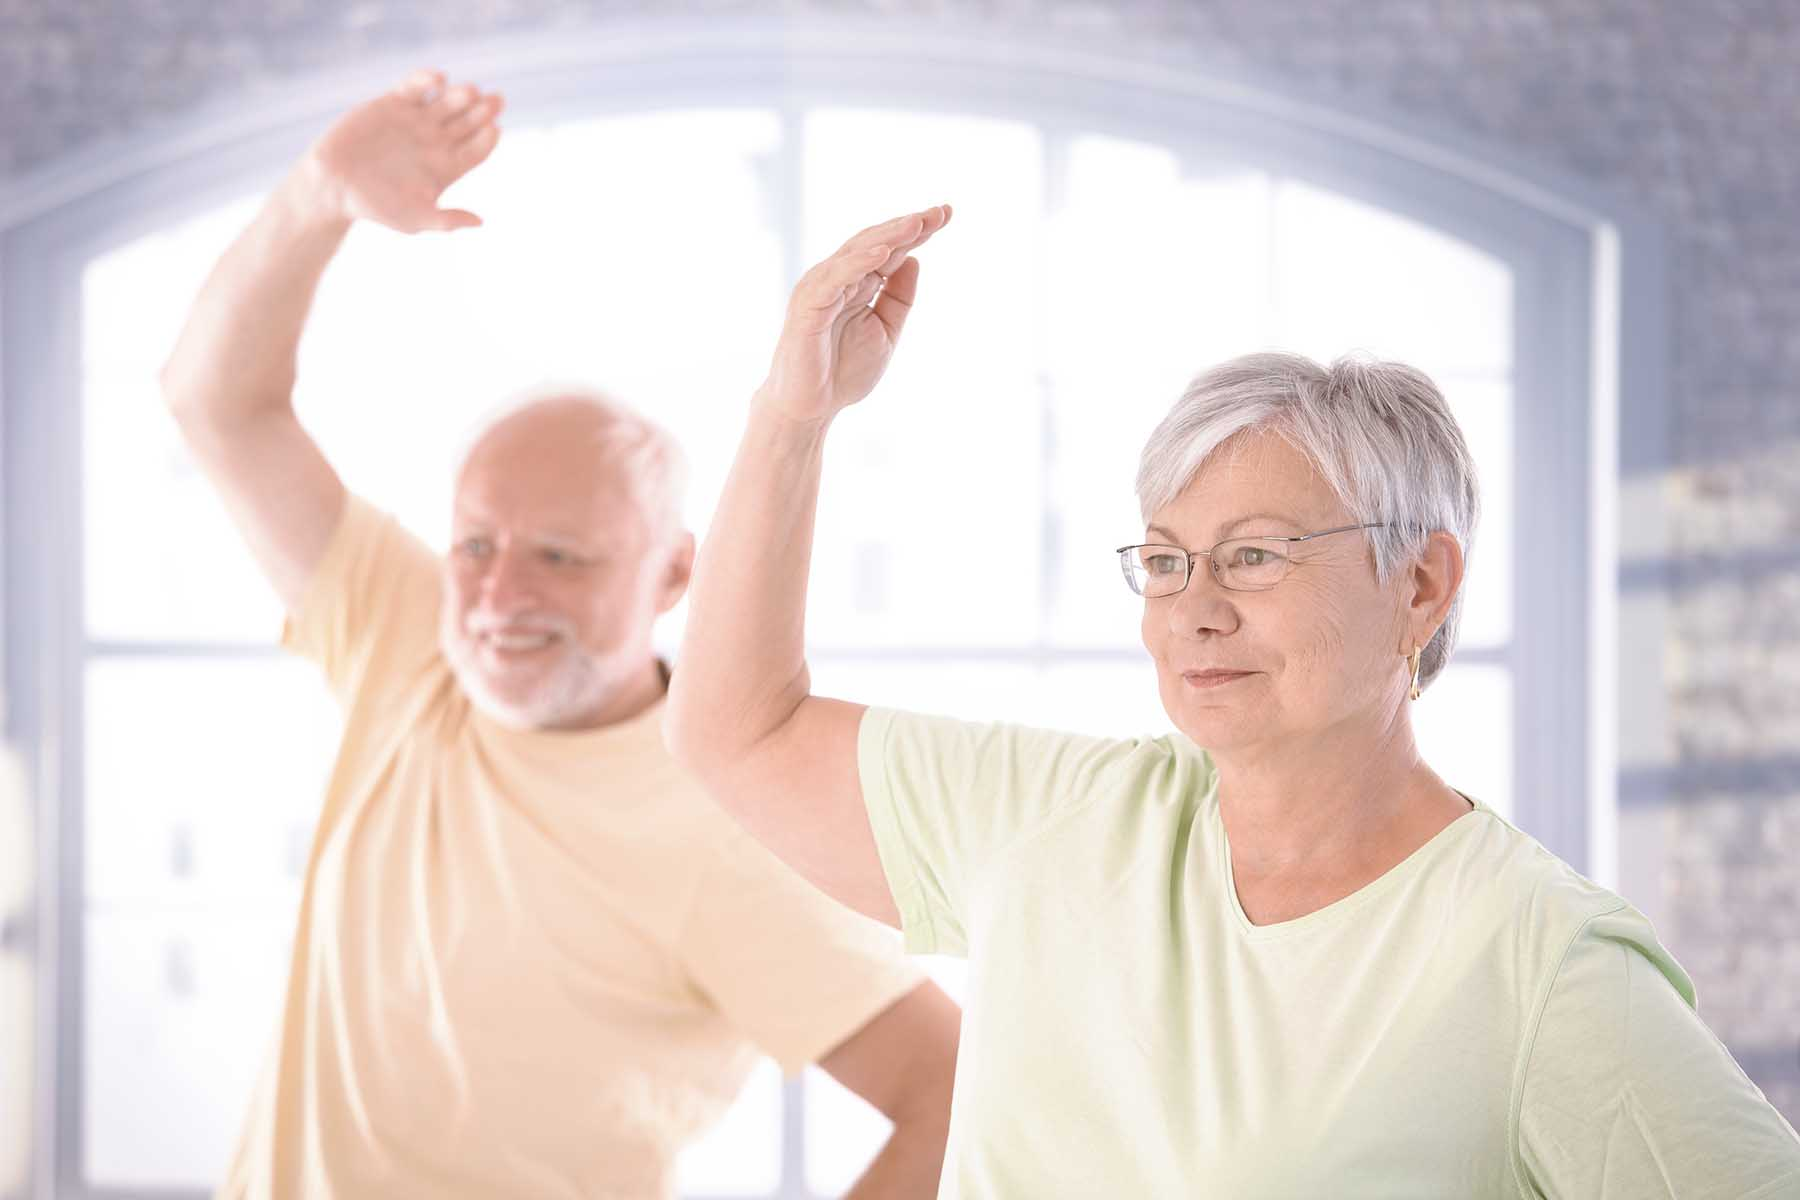 Getting Regular Exercise if Key to Self-Care